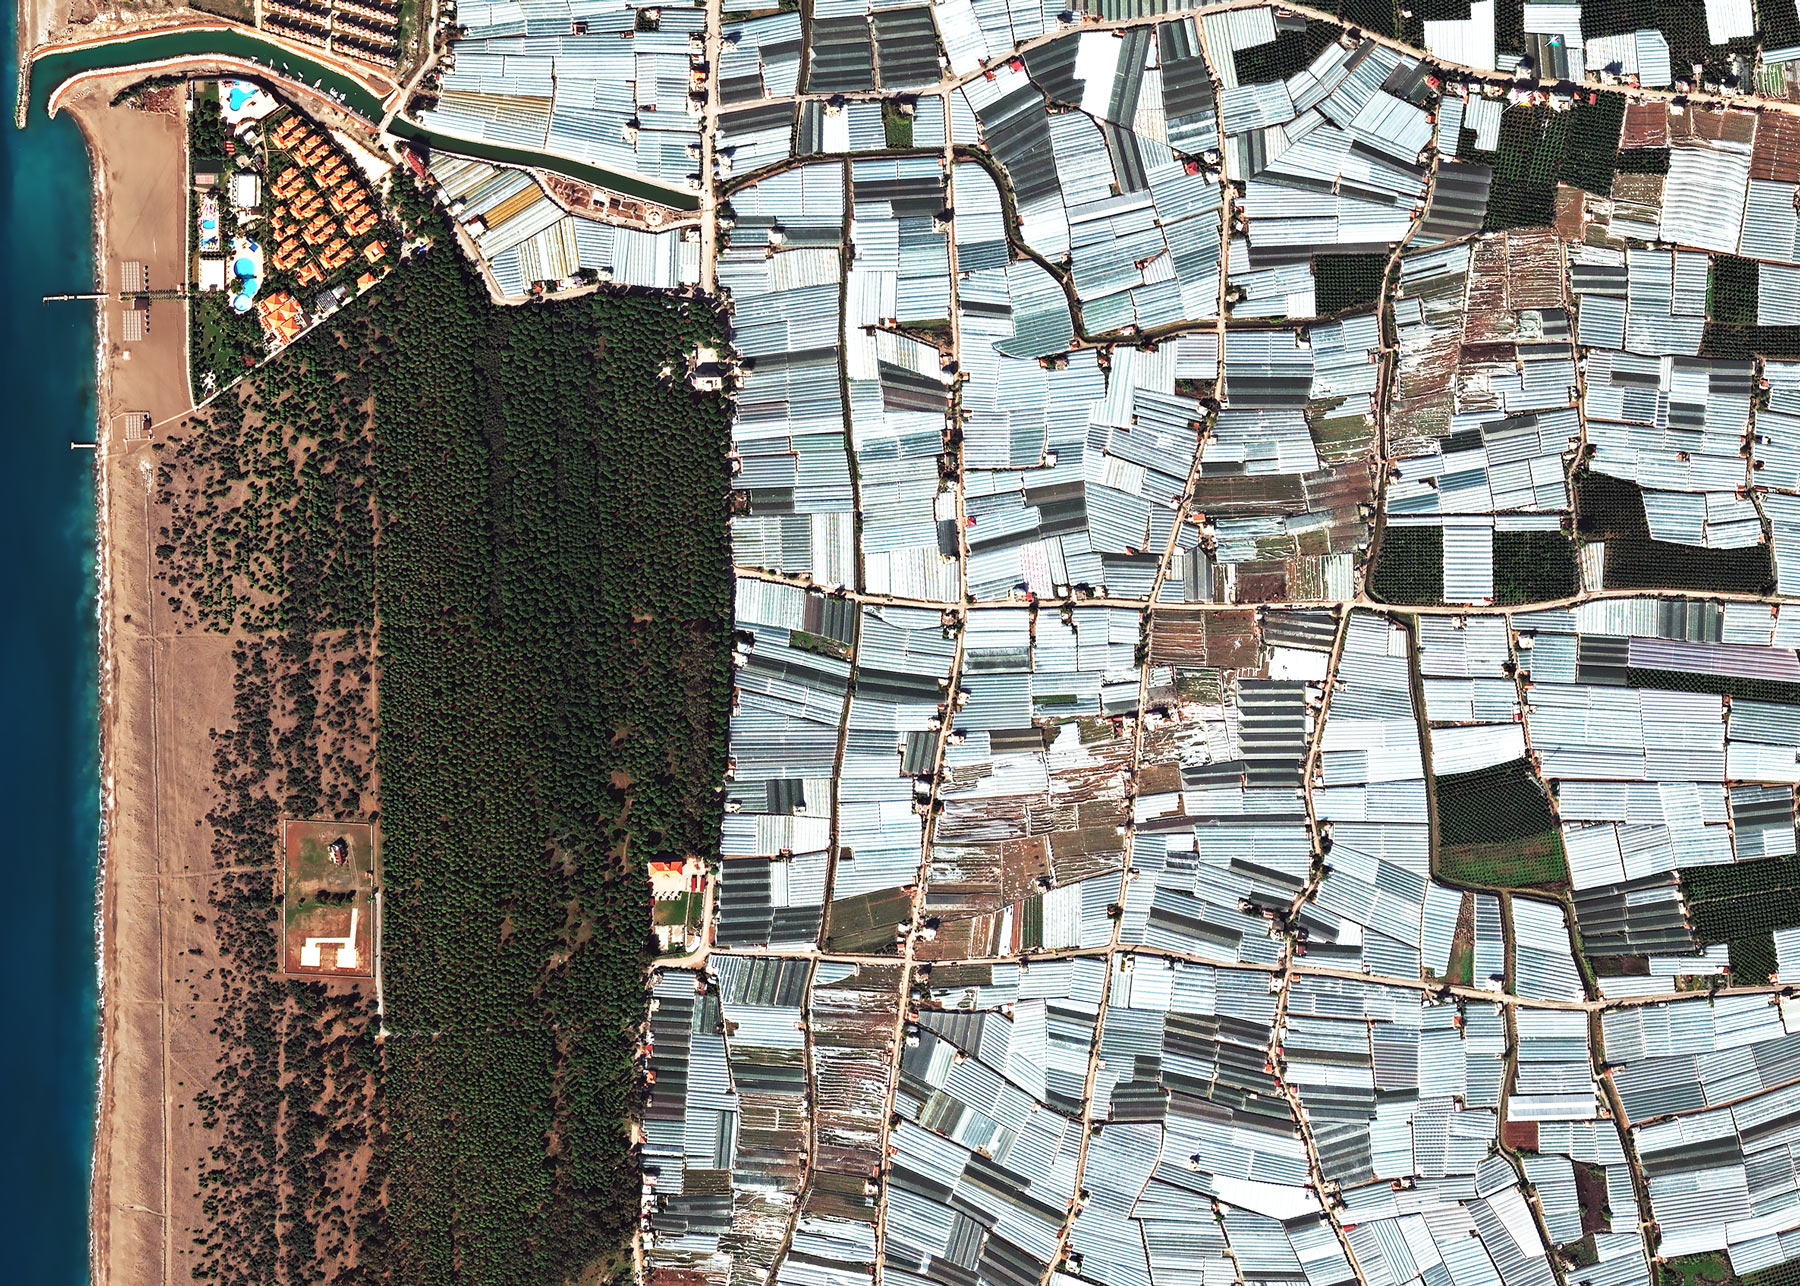 A whirlwind leaves a path of destruction through a region of greenhouses | Antalya, Turkey | 16 November 2017